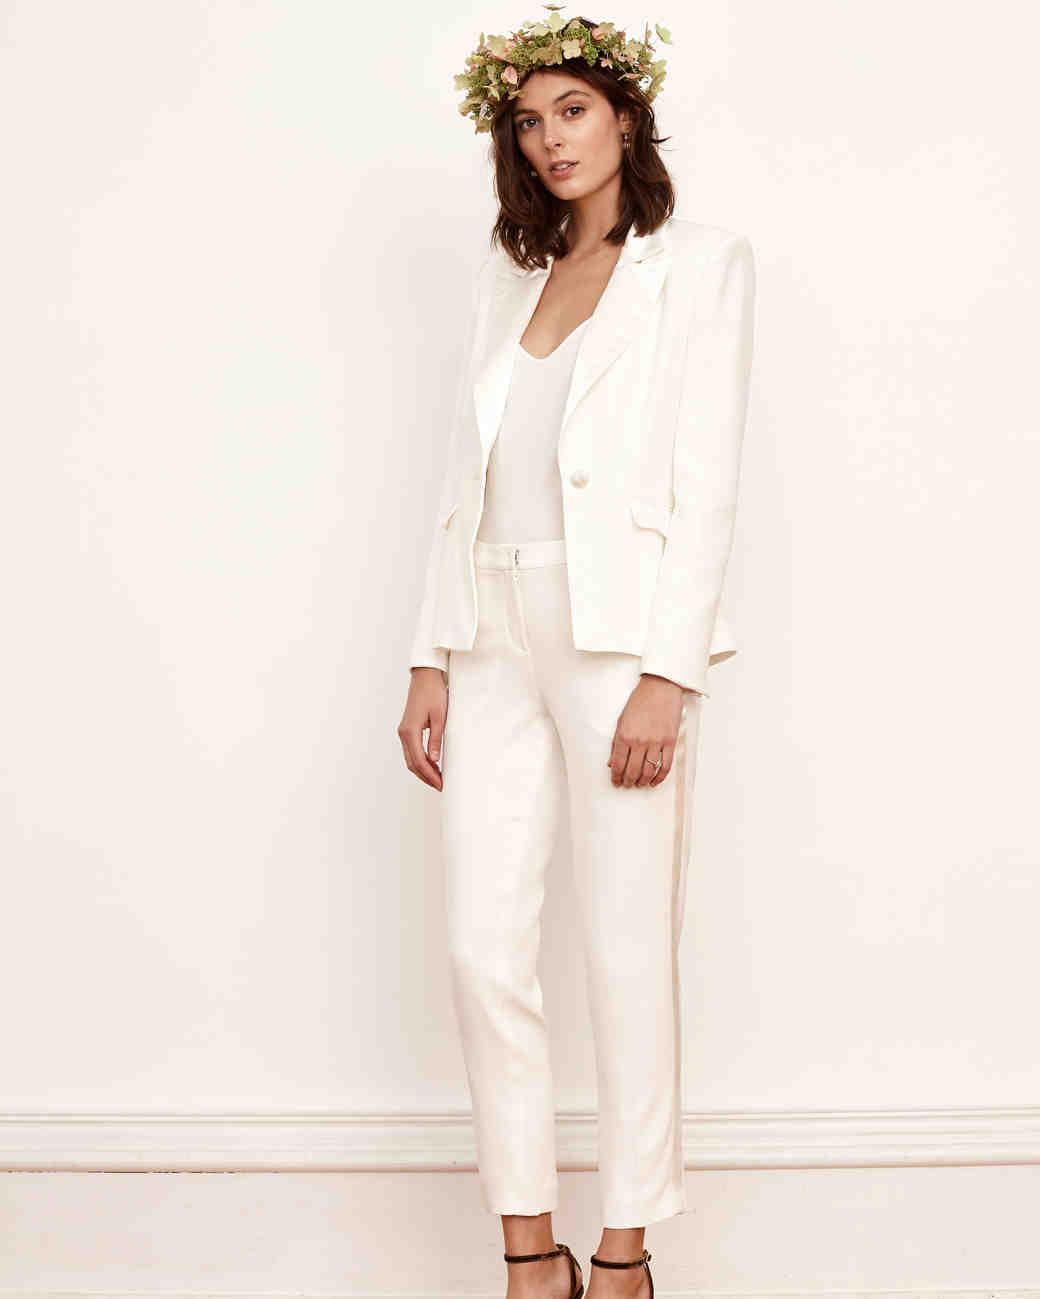 61 chic wedding suits for brides martha stewart weddings for Dress pant outfits for wedding